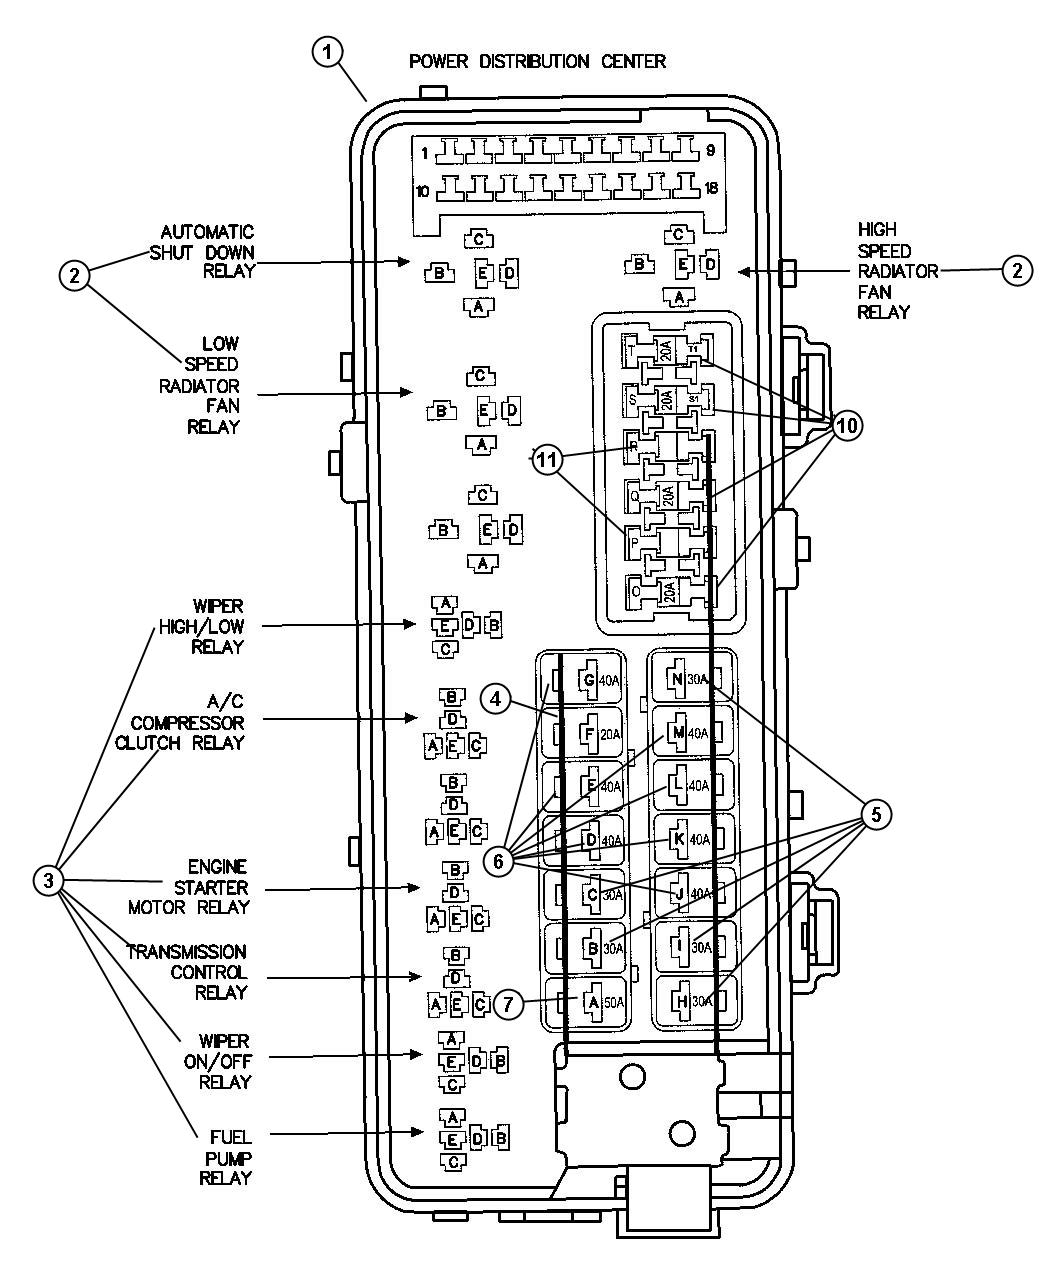 2004 Chrysler 300m Wiring Diagram